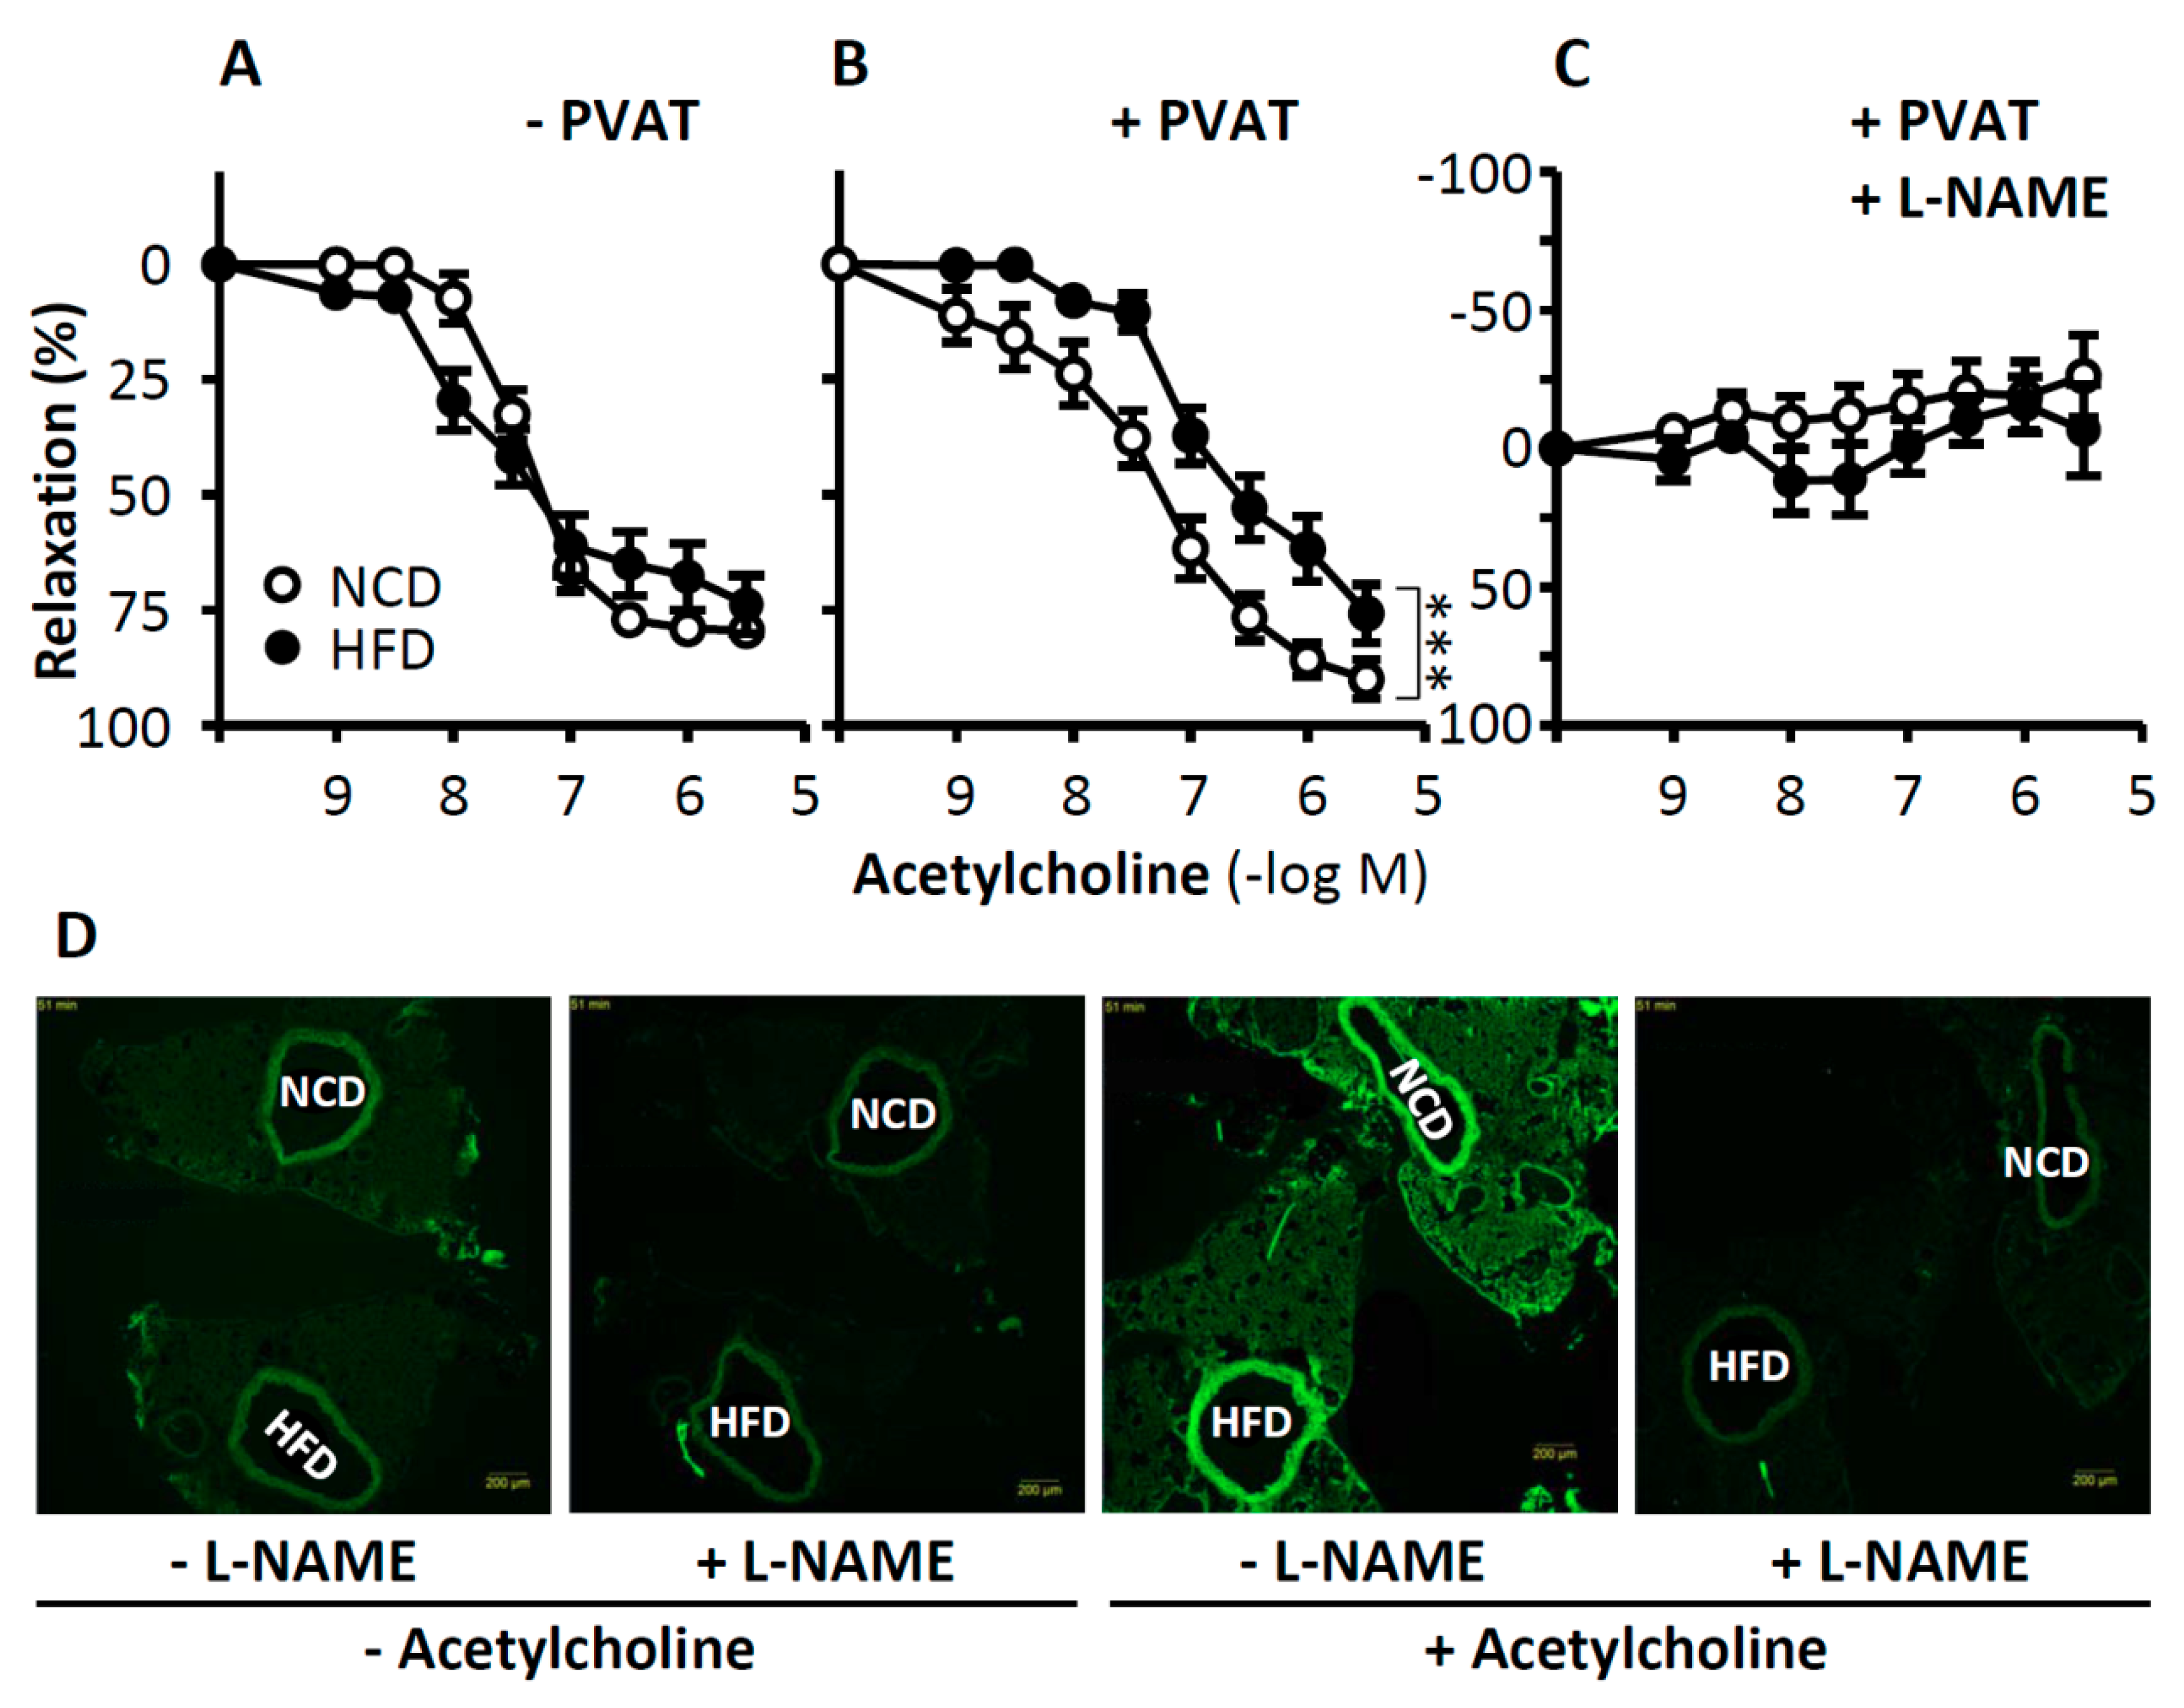 IJMS | Free Full-Text | New Therapeutic Implications of Endothelial